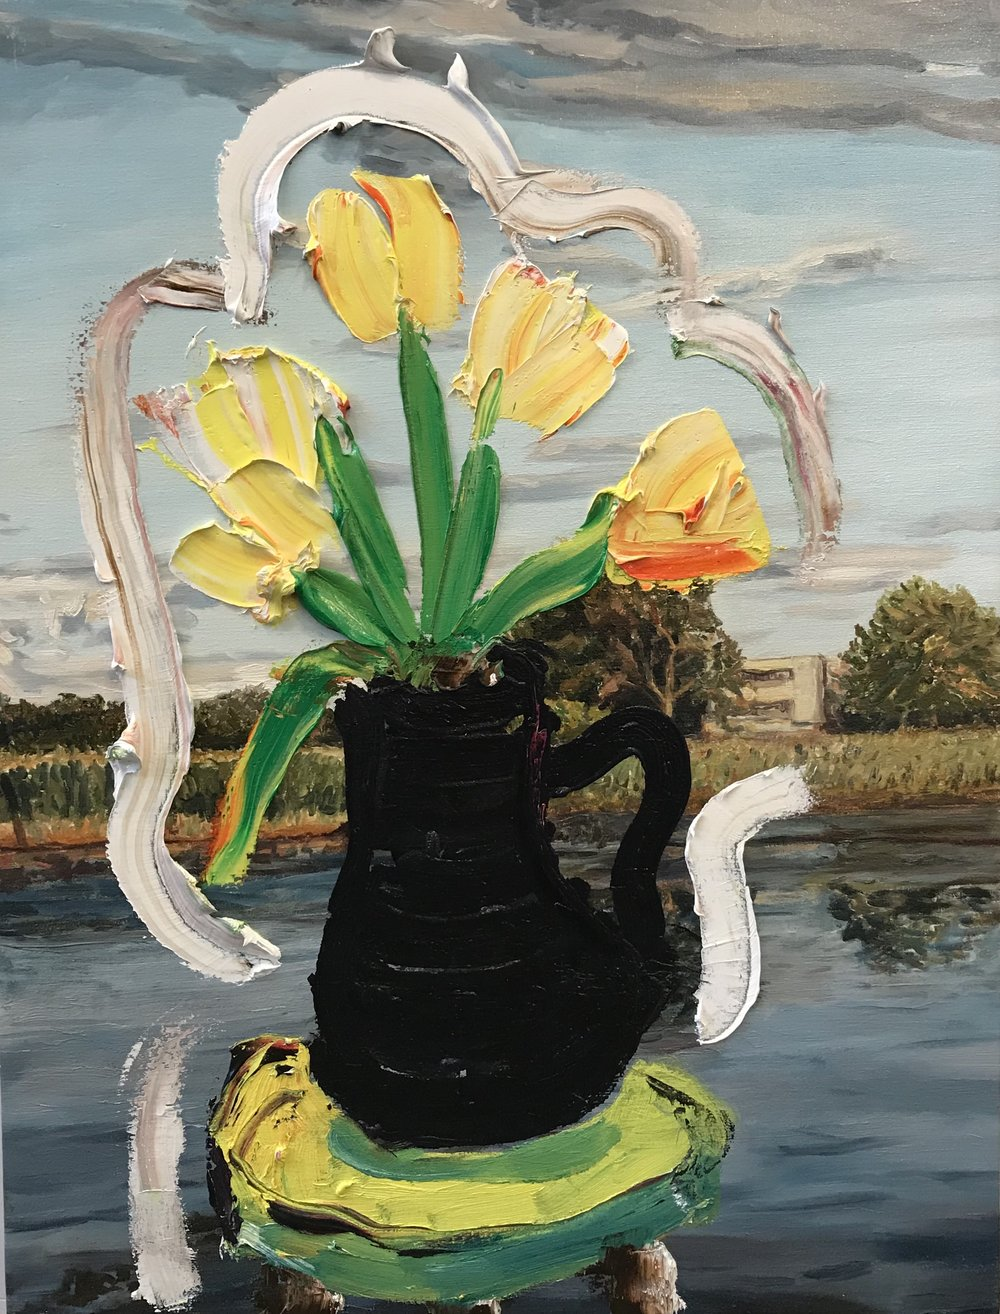 Sag Pond Landscape with Still-life (Yellow Flowers), 2018